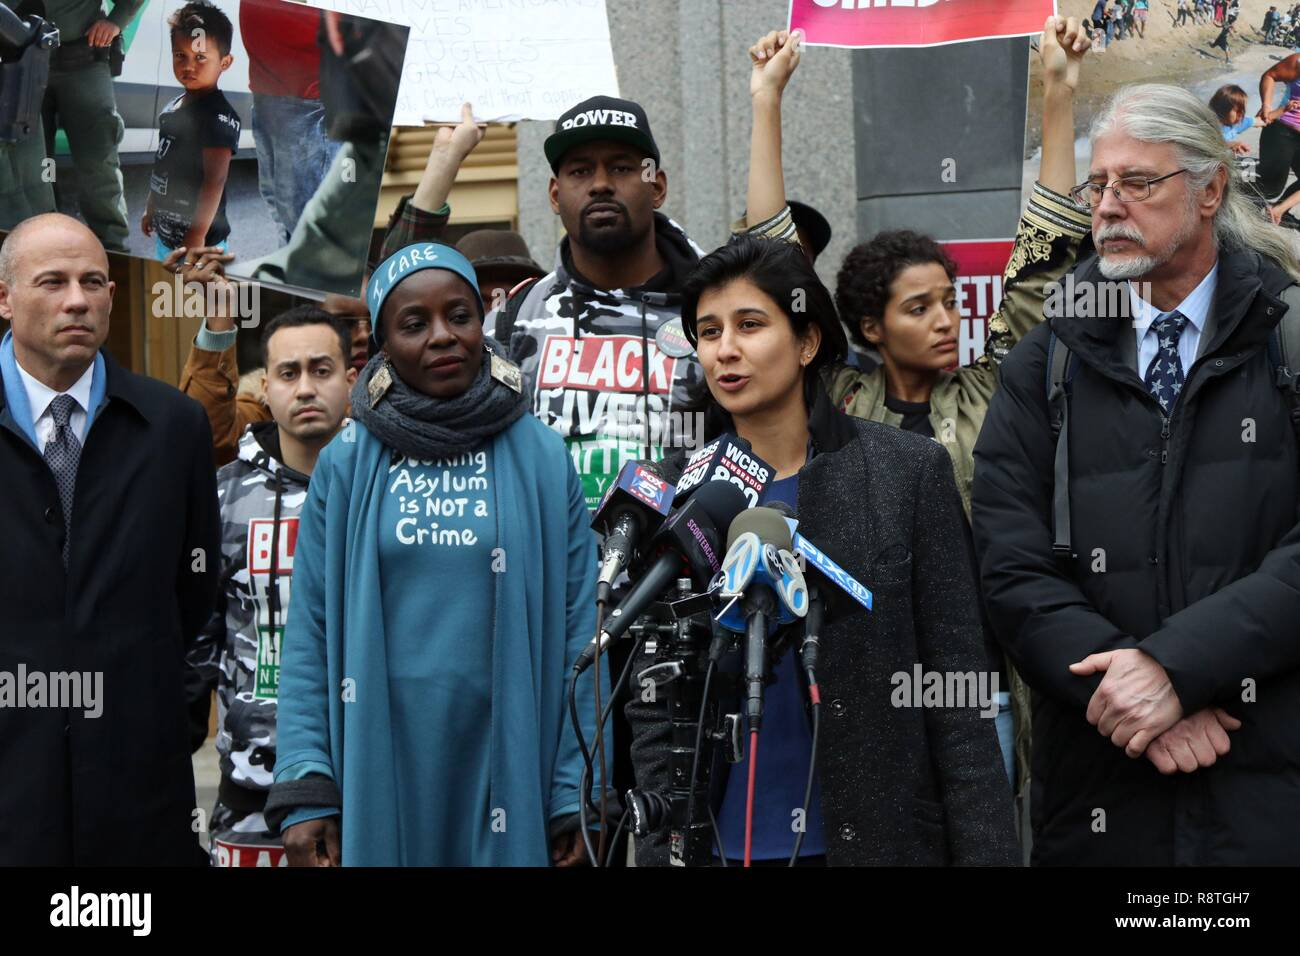 New York, NY, USA. 17th. Dec, 2018. Protester THERESE PATRICIA OKOUMOU, 44, who was charged with trespassing, disorderly conduct and interfering with government functions after partially climbing the Statue of Liberty monument on July 4, 2018, was found guilty on all charges in the U.S. Federal Court in lower Manhattan on 17 December 2018. The Congolese-born US naturalized-citizen, will be sentenced on 5 March 2019 and faces up to 6 months of jail on each of three different charges. Pictured is THERESE PATRICIA OKOUMOU and legal advisor Attorney MICHAEL AVENATTI, with defence Attorneys RON K Stock Photo